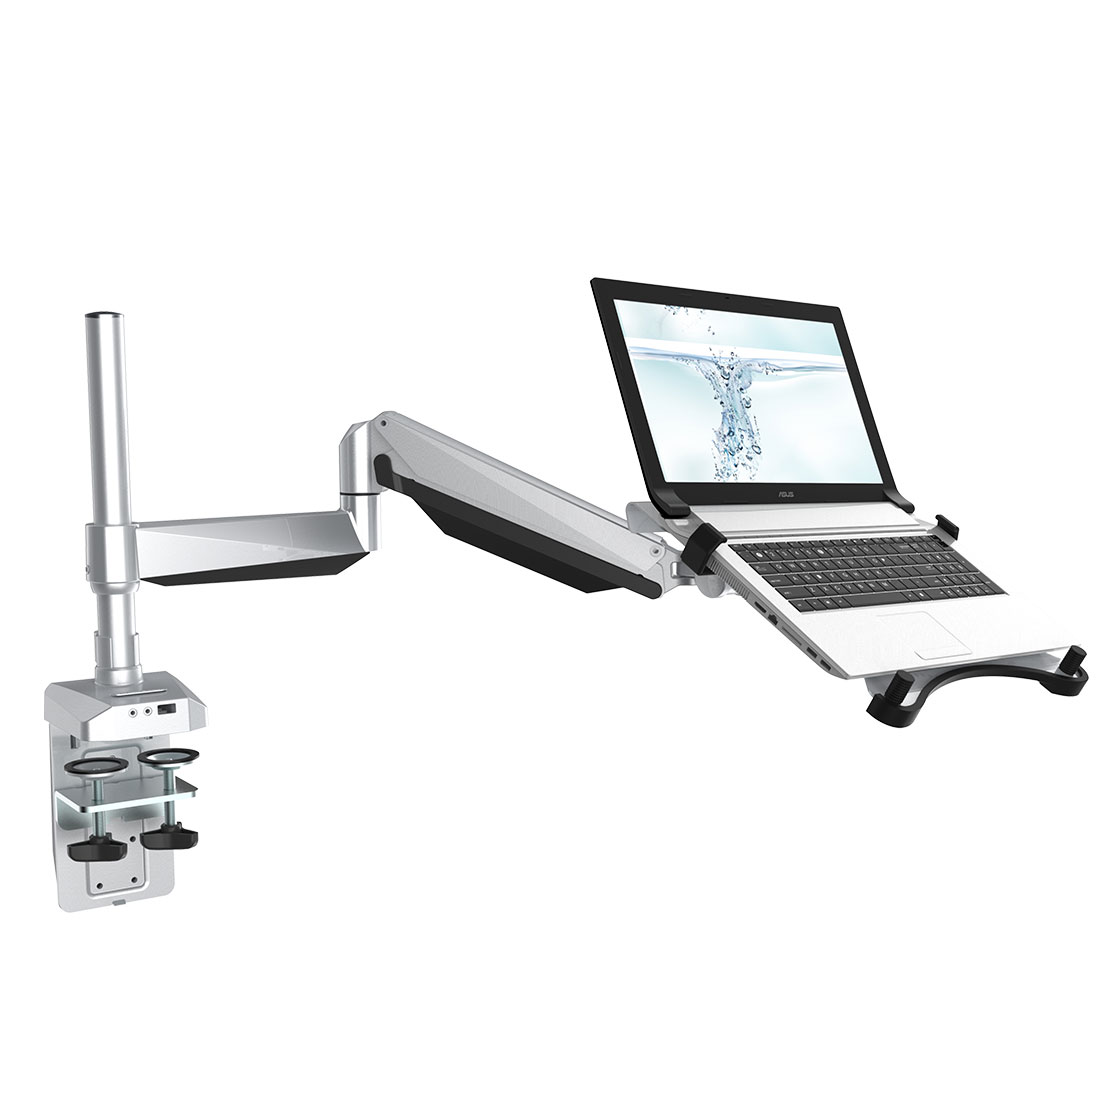 Loctek D7P Desk Notebook Mount for most Laptops